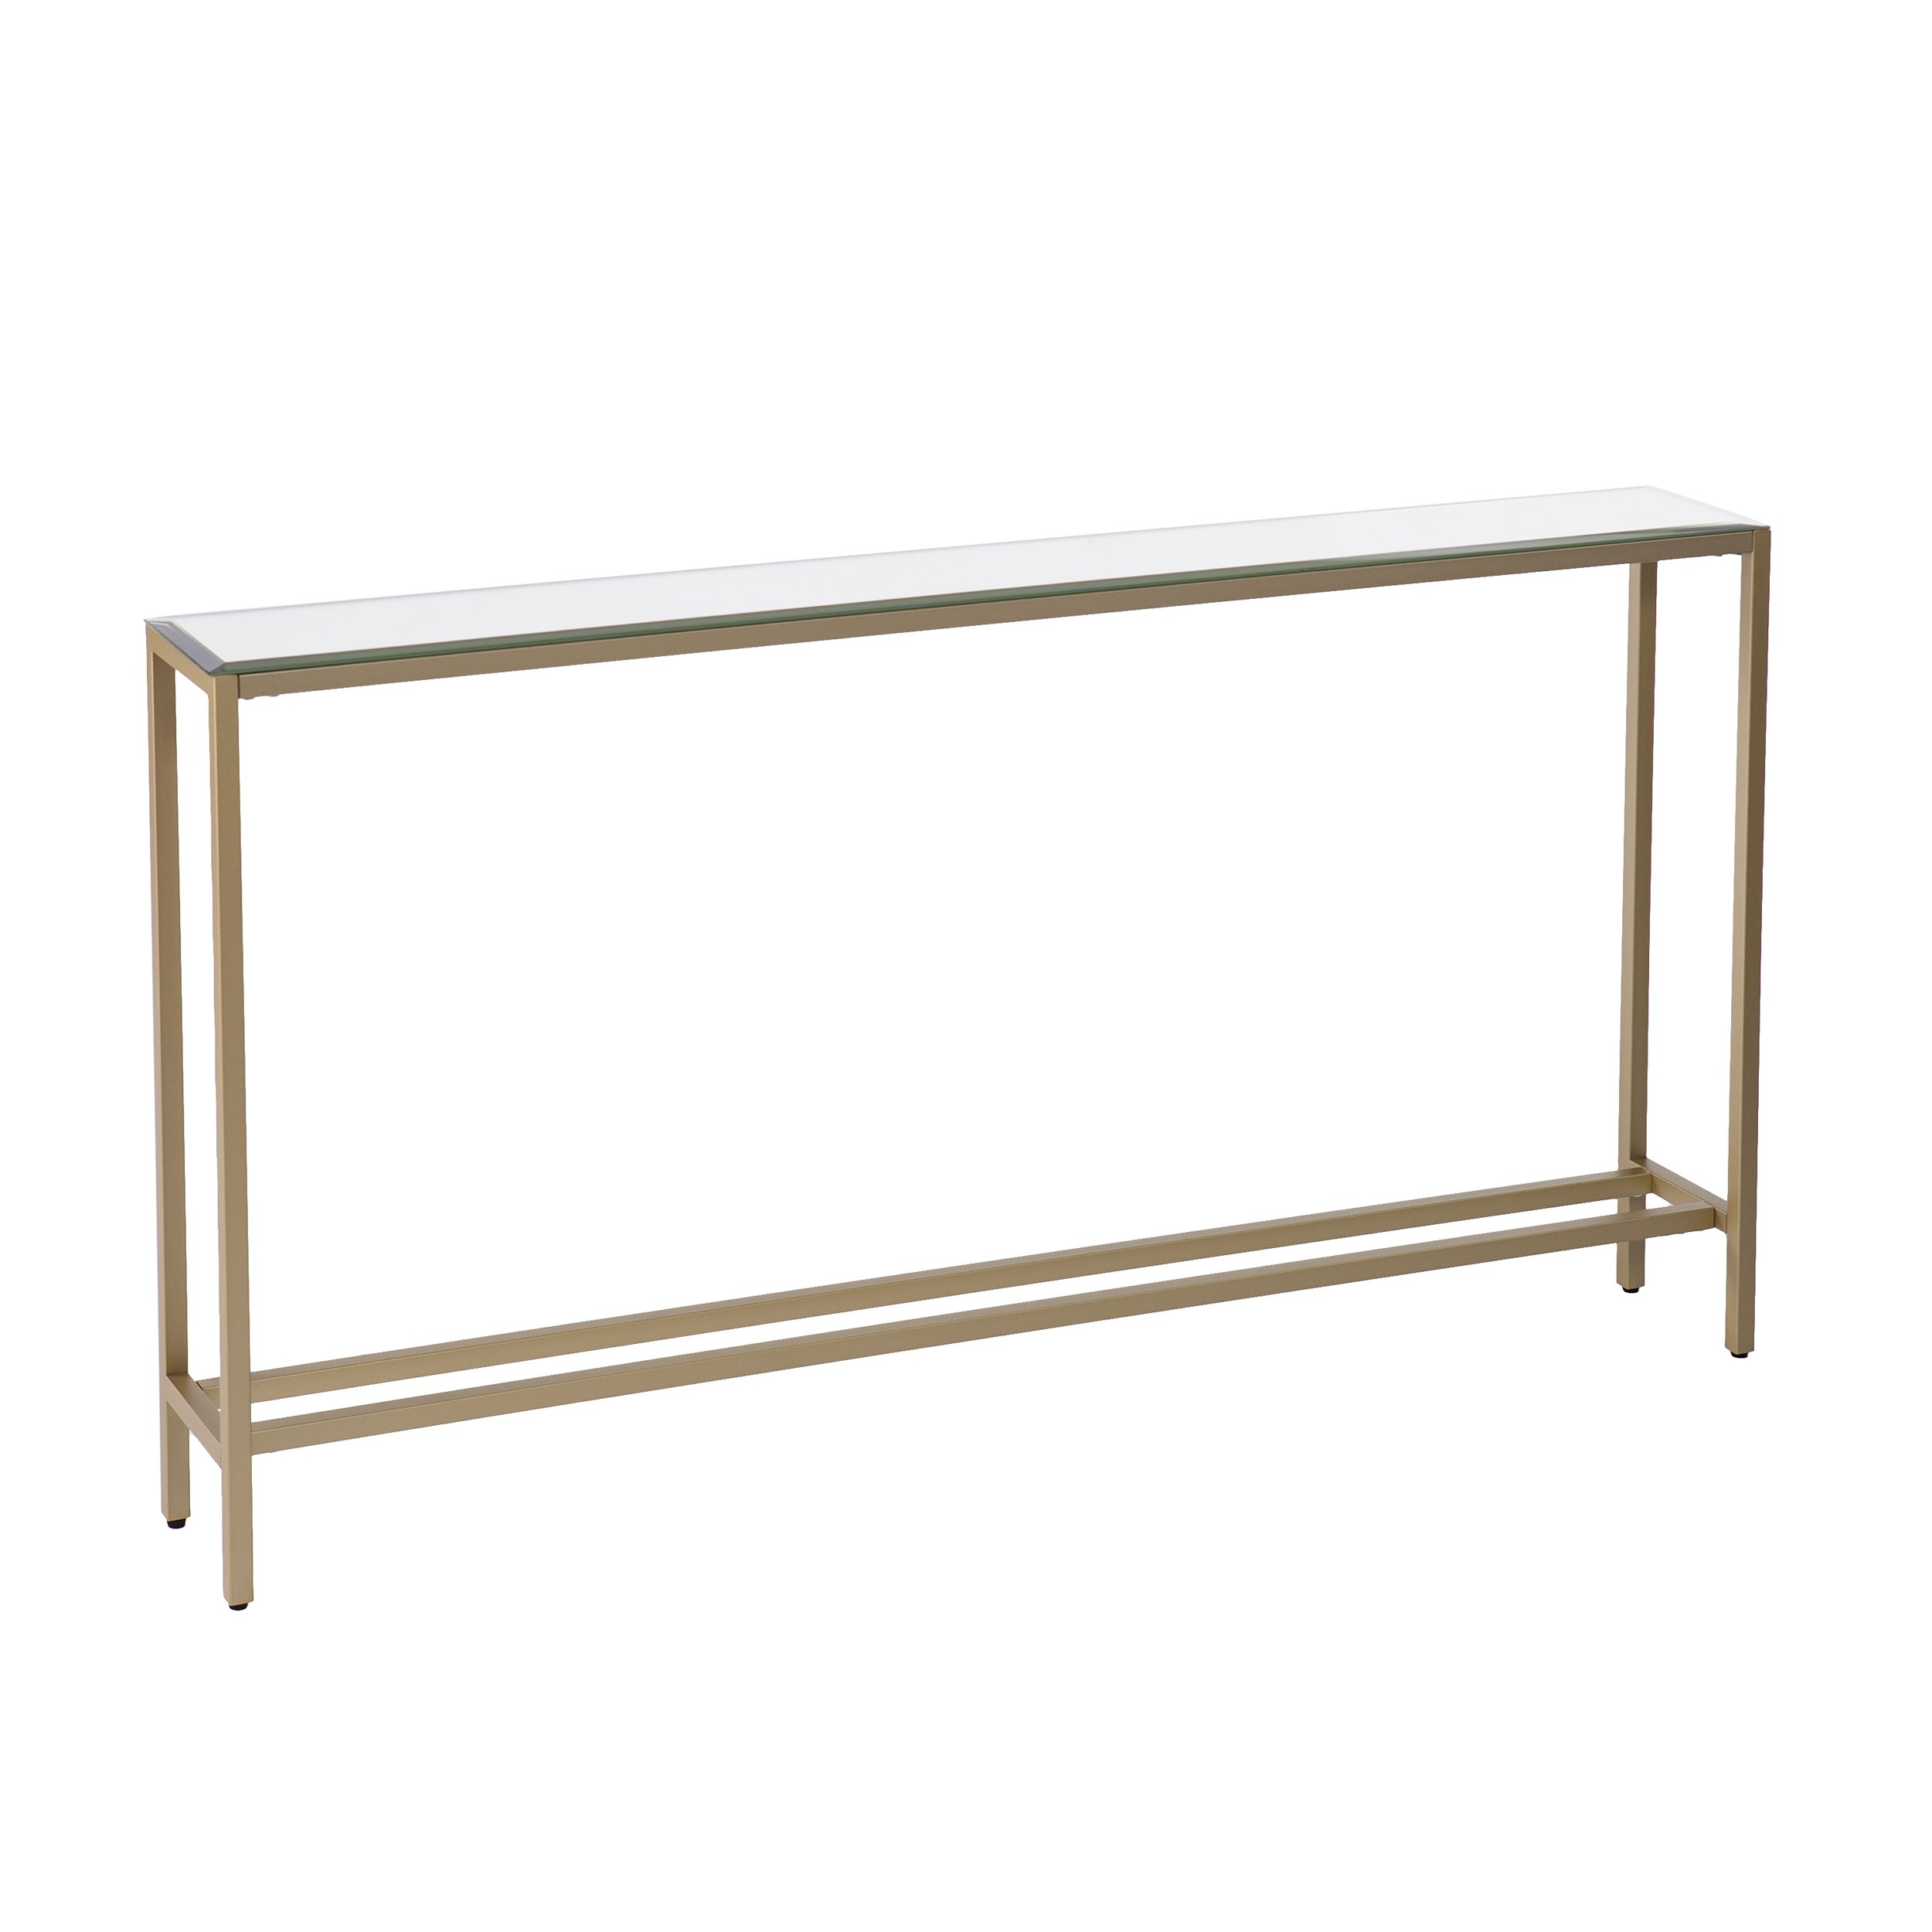 Furniture HotSpot - Metal Skinny Console Table (56x30) - Slim Profile w/Mirror Top